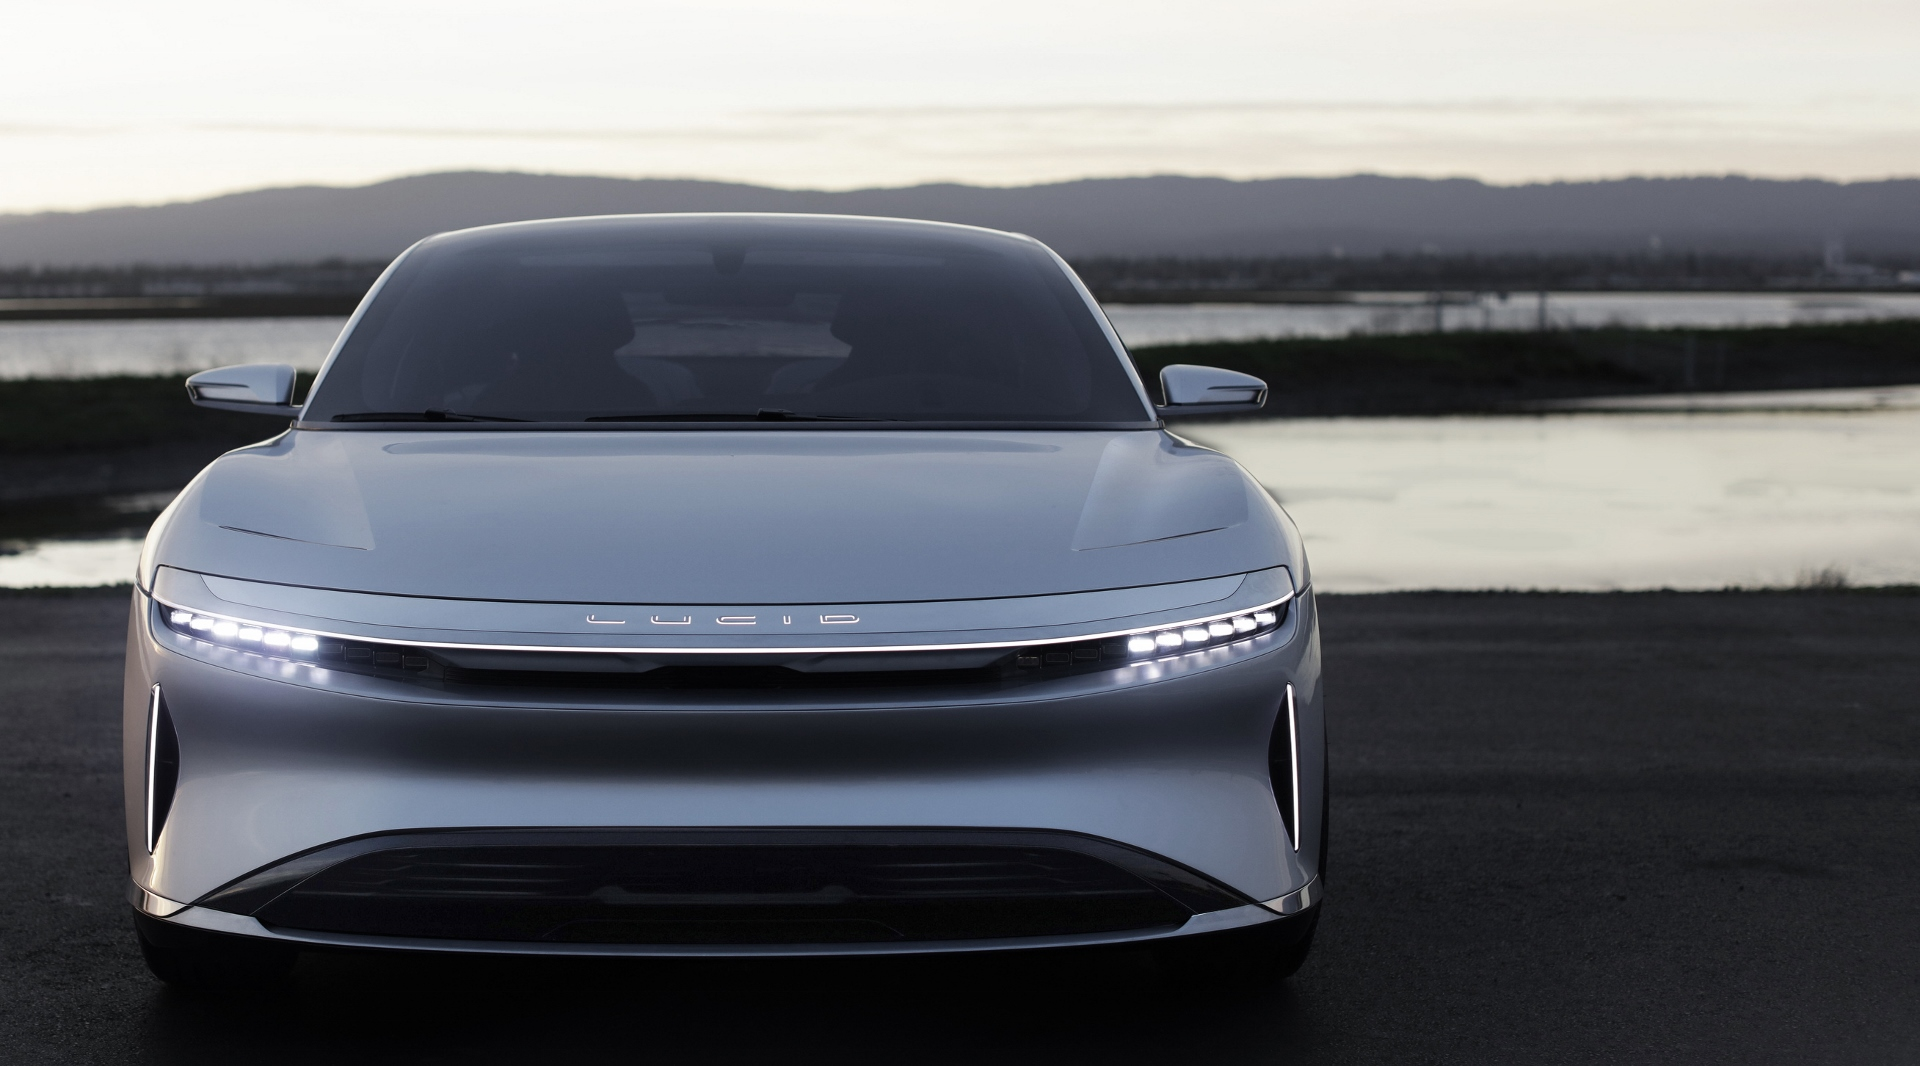 Lucid Air Electric Car Video Shows Luxury Sedan On The Road